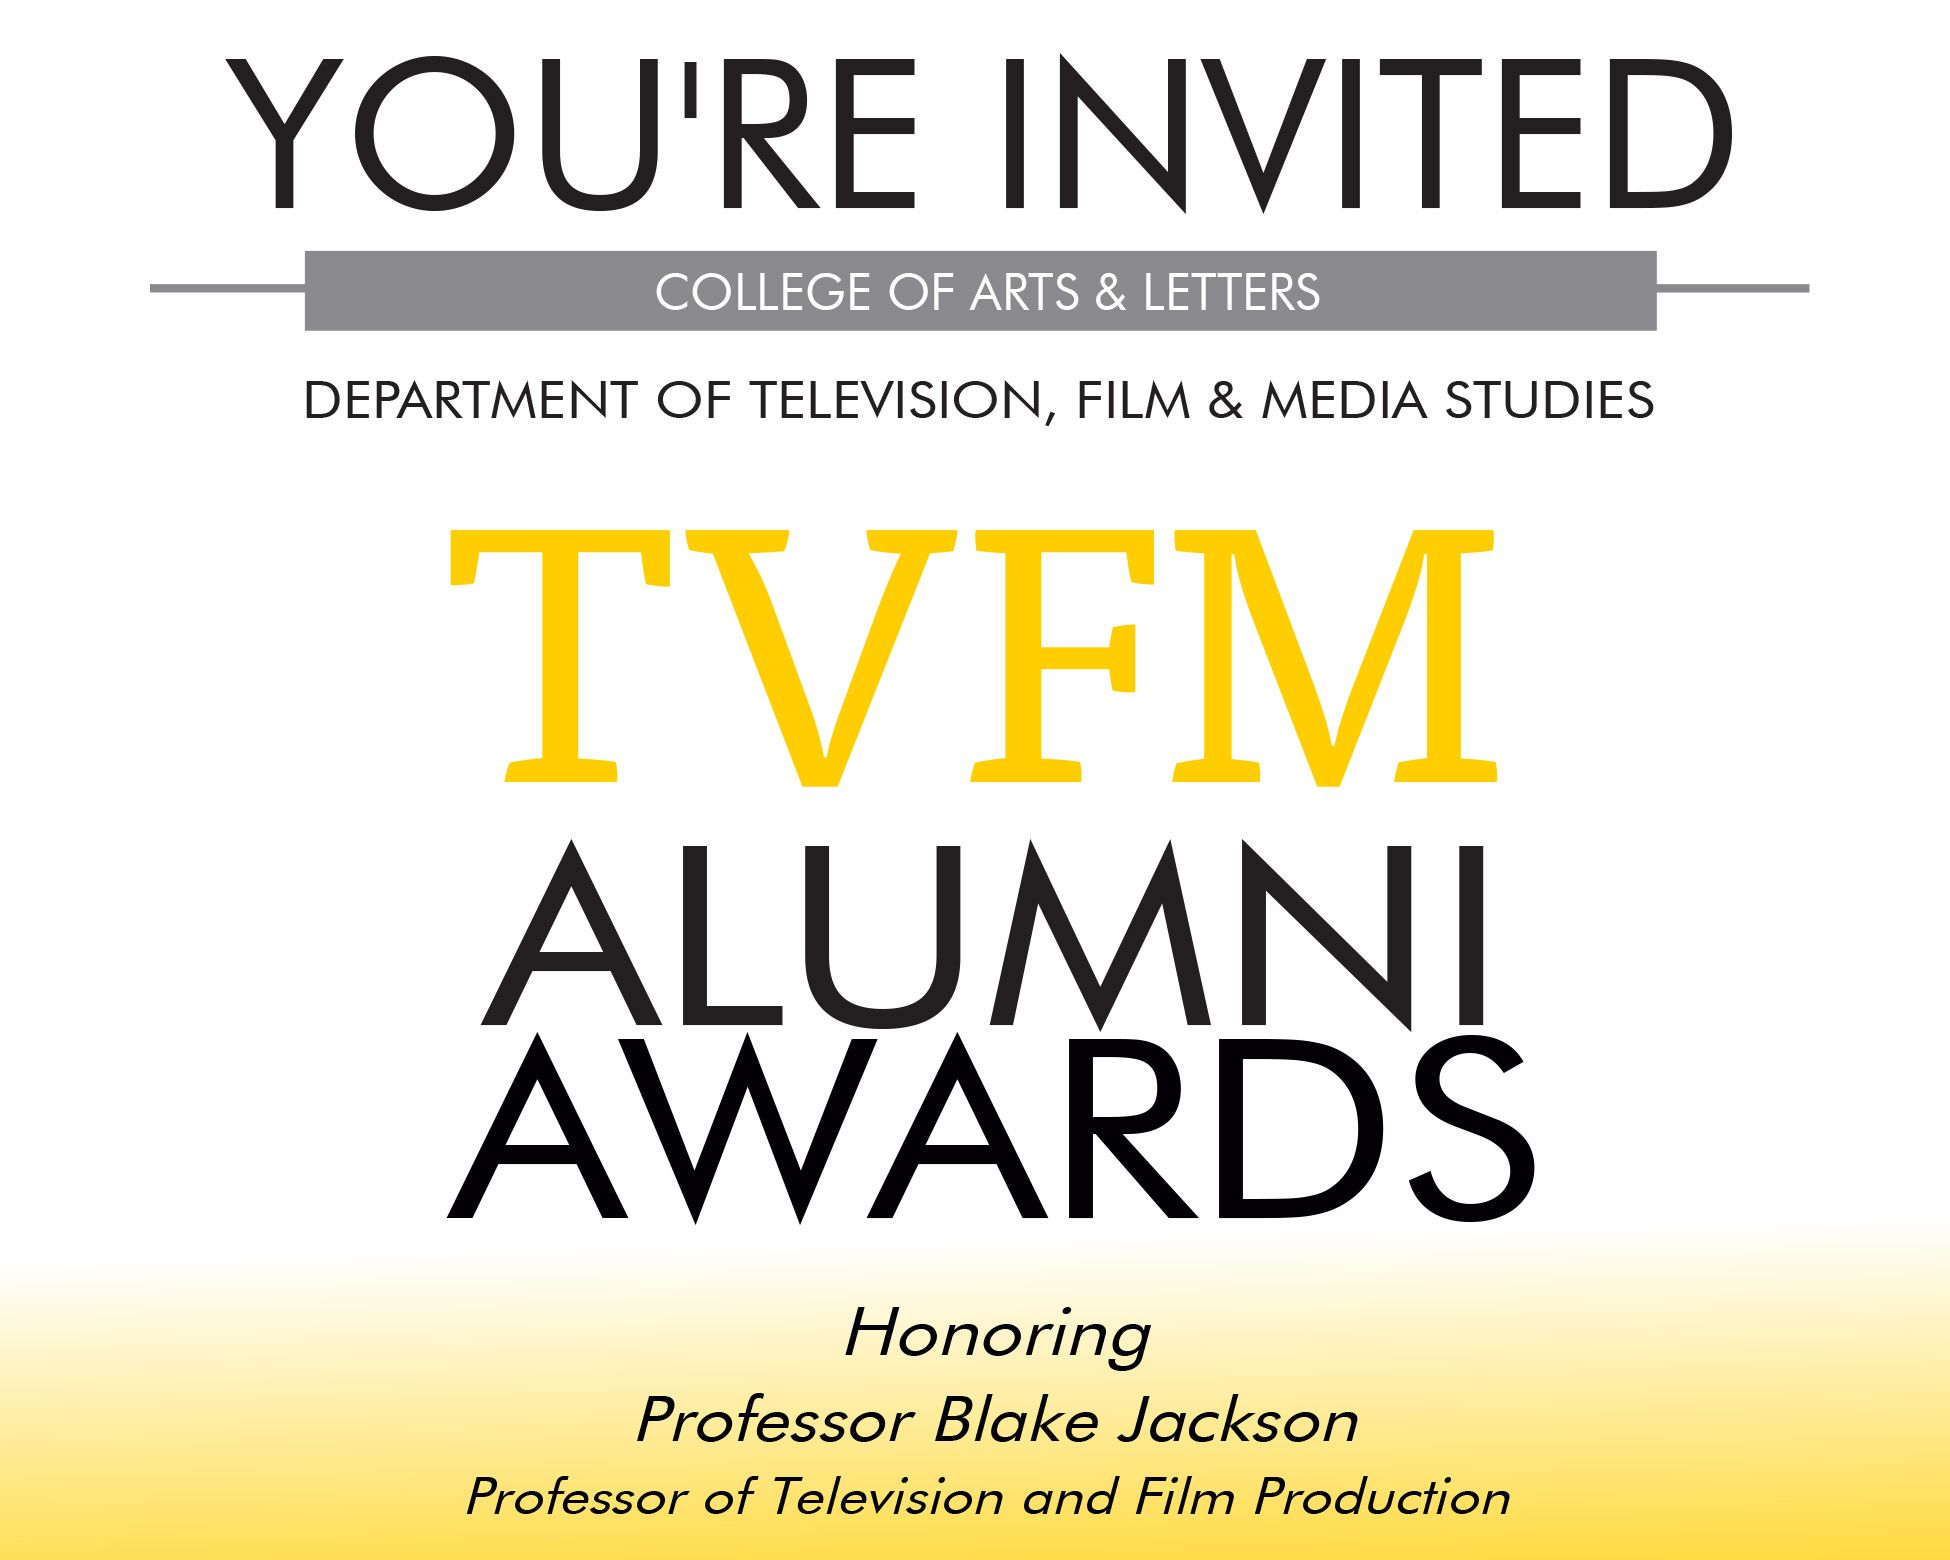 You're Invited to the TVFM Alumni Awards